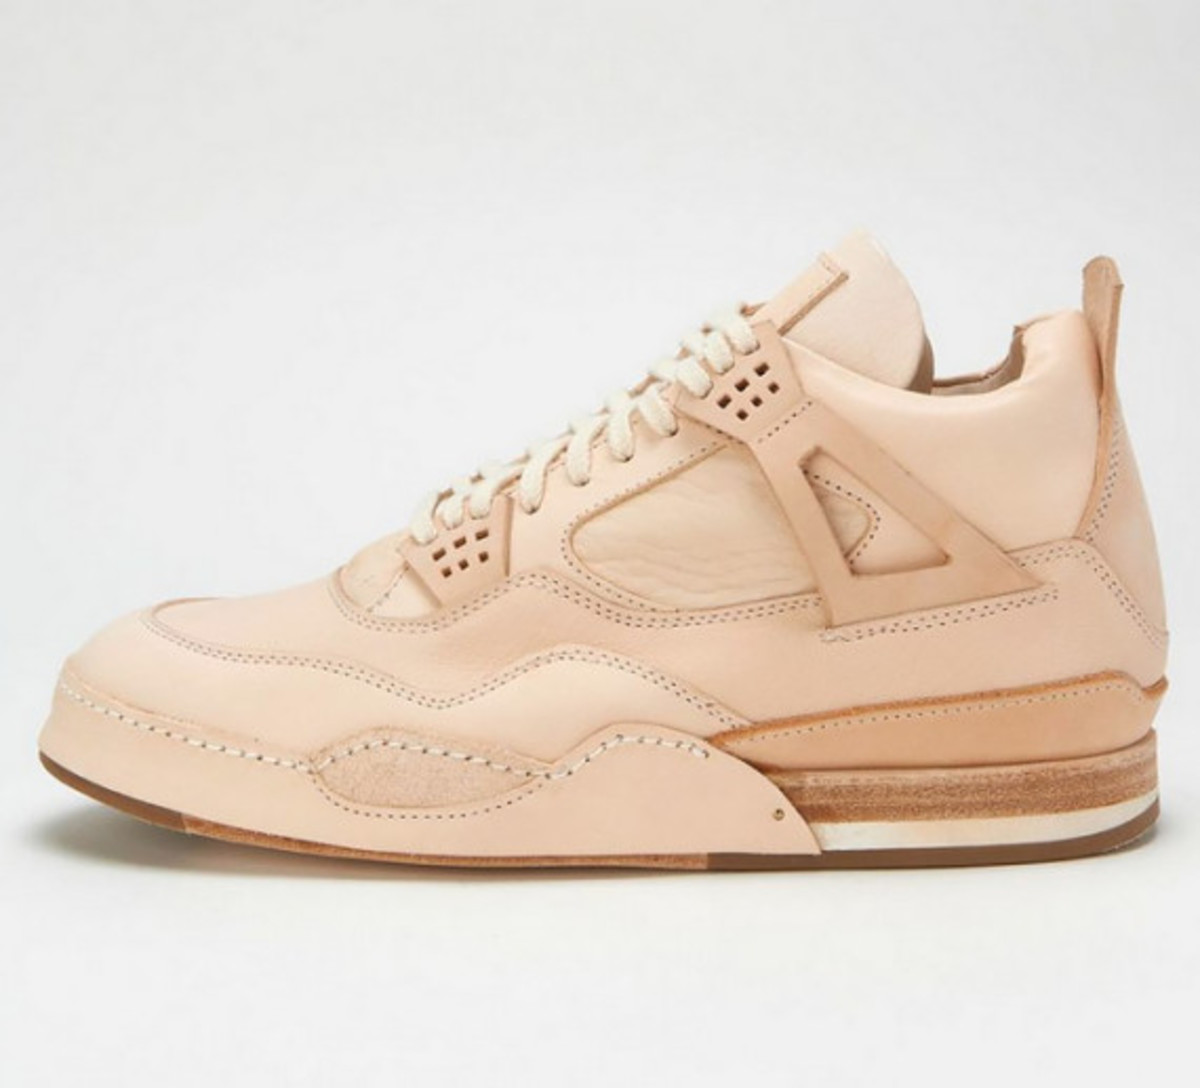 Hender Scheme - Air Jordan 4-Inspired Footwear Design - 0